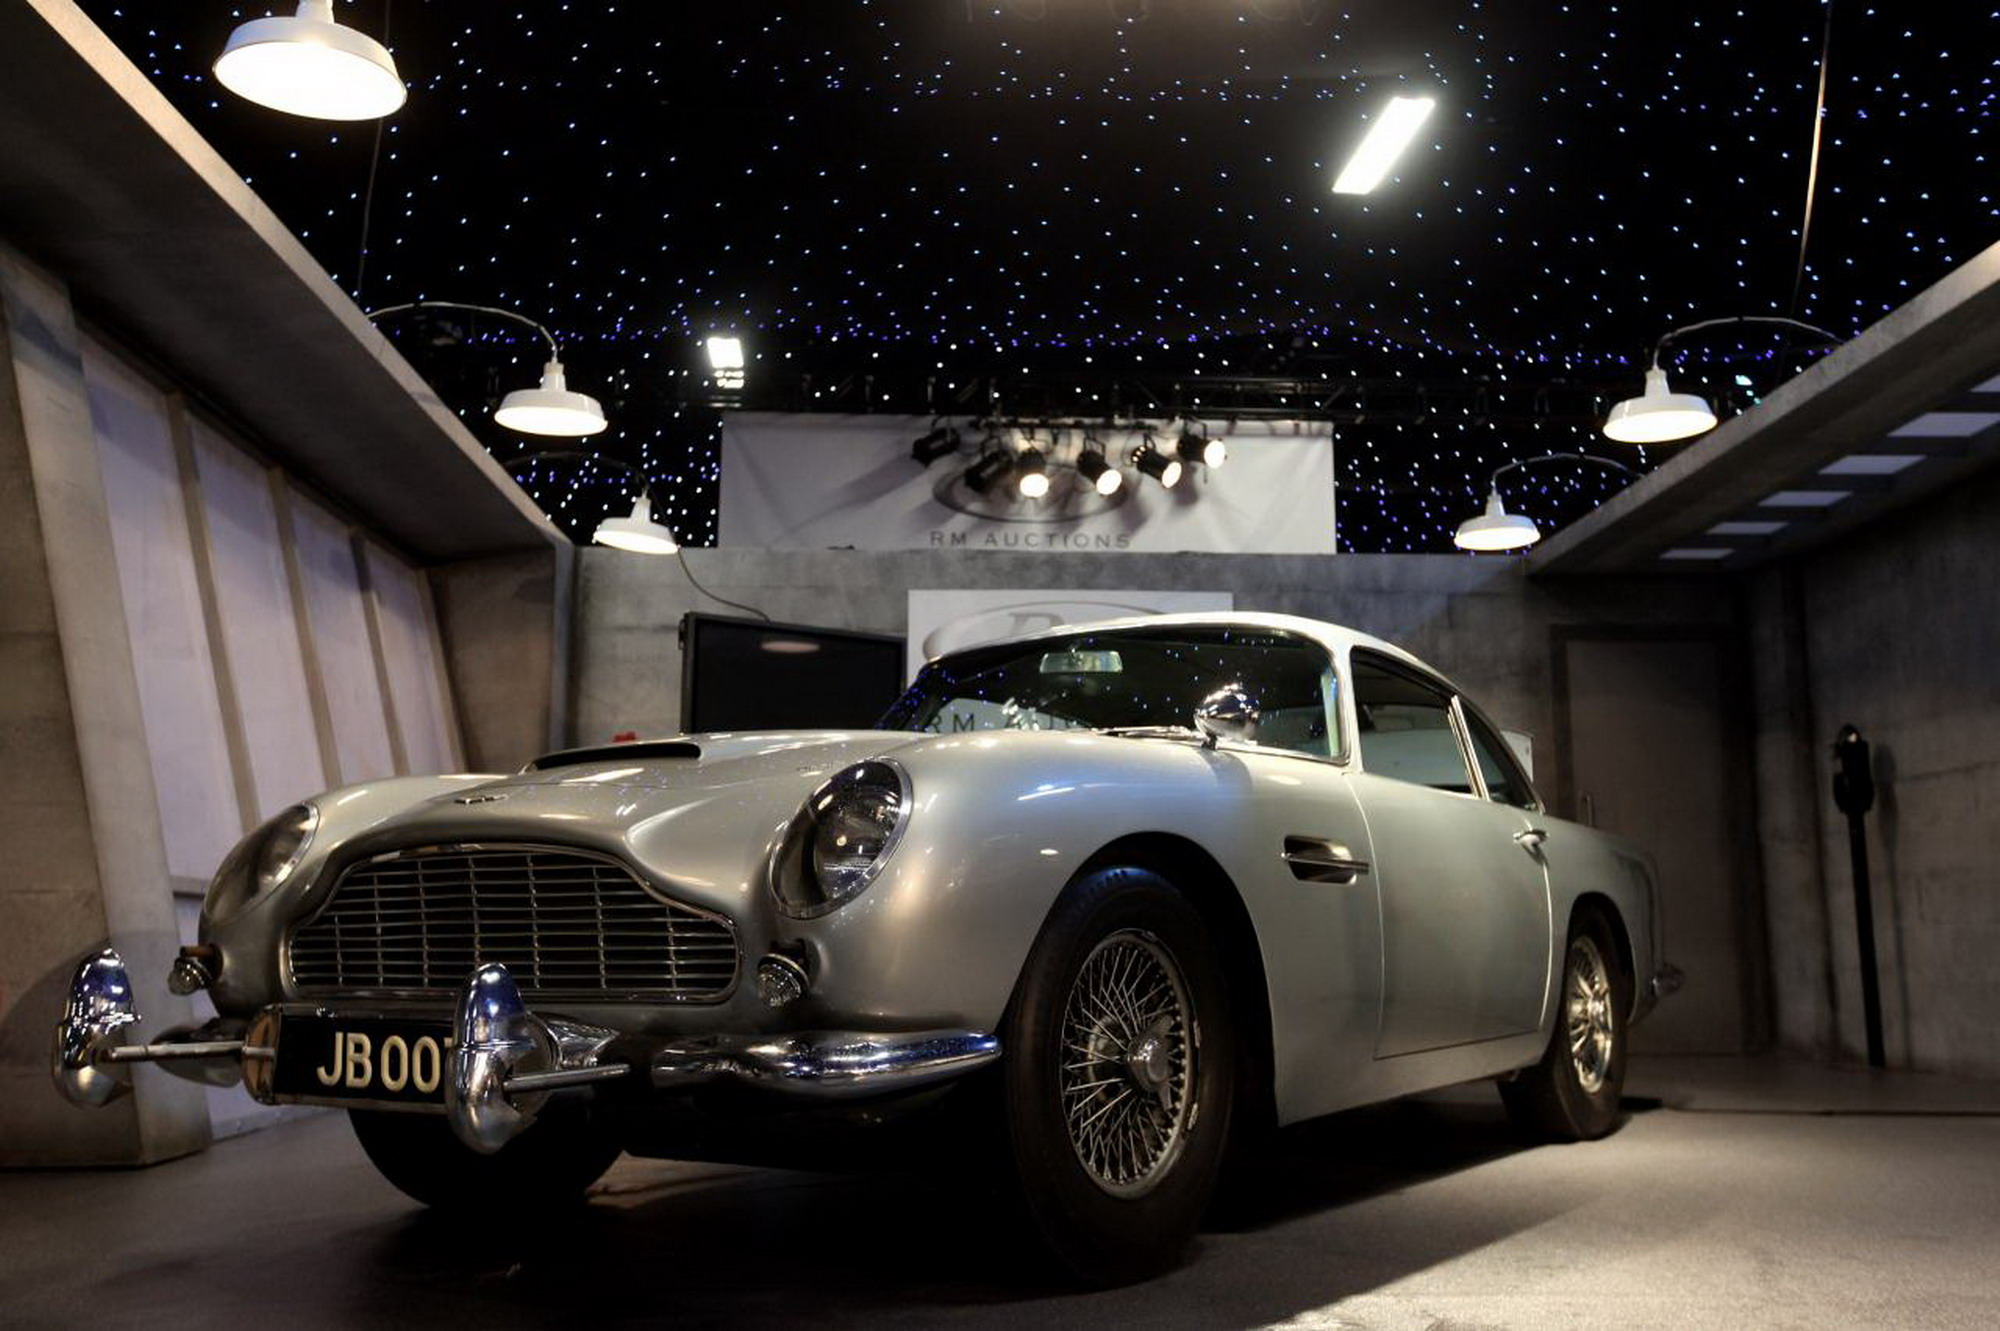 11 Aston Martin Db5 Hd Wallpapers Background Images Wallpaper Images, Photos, Reviews